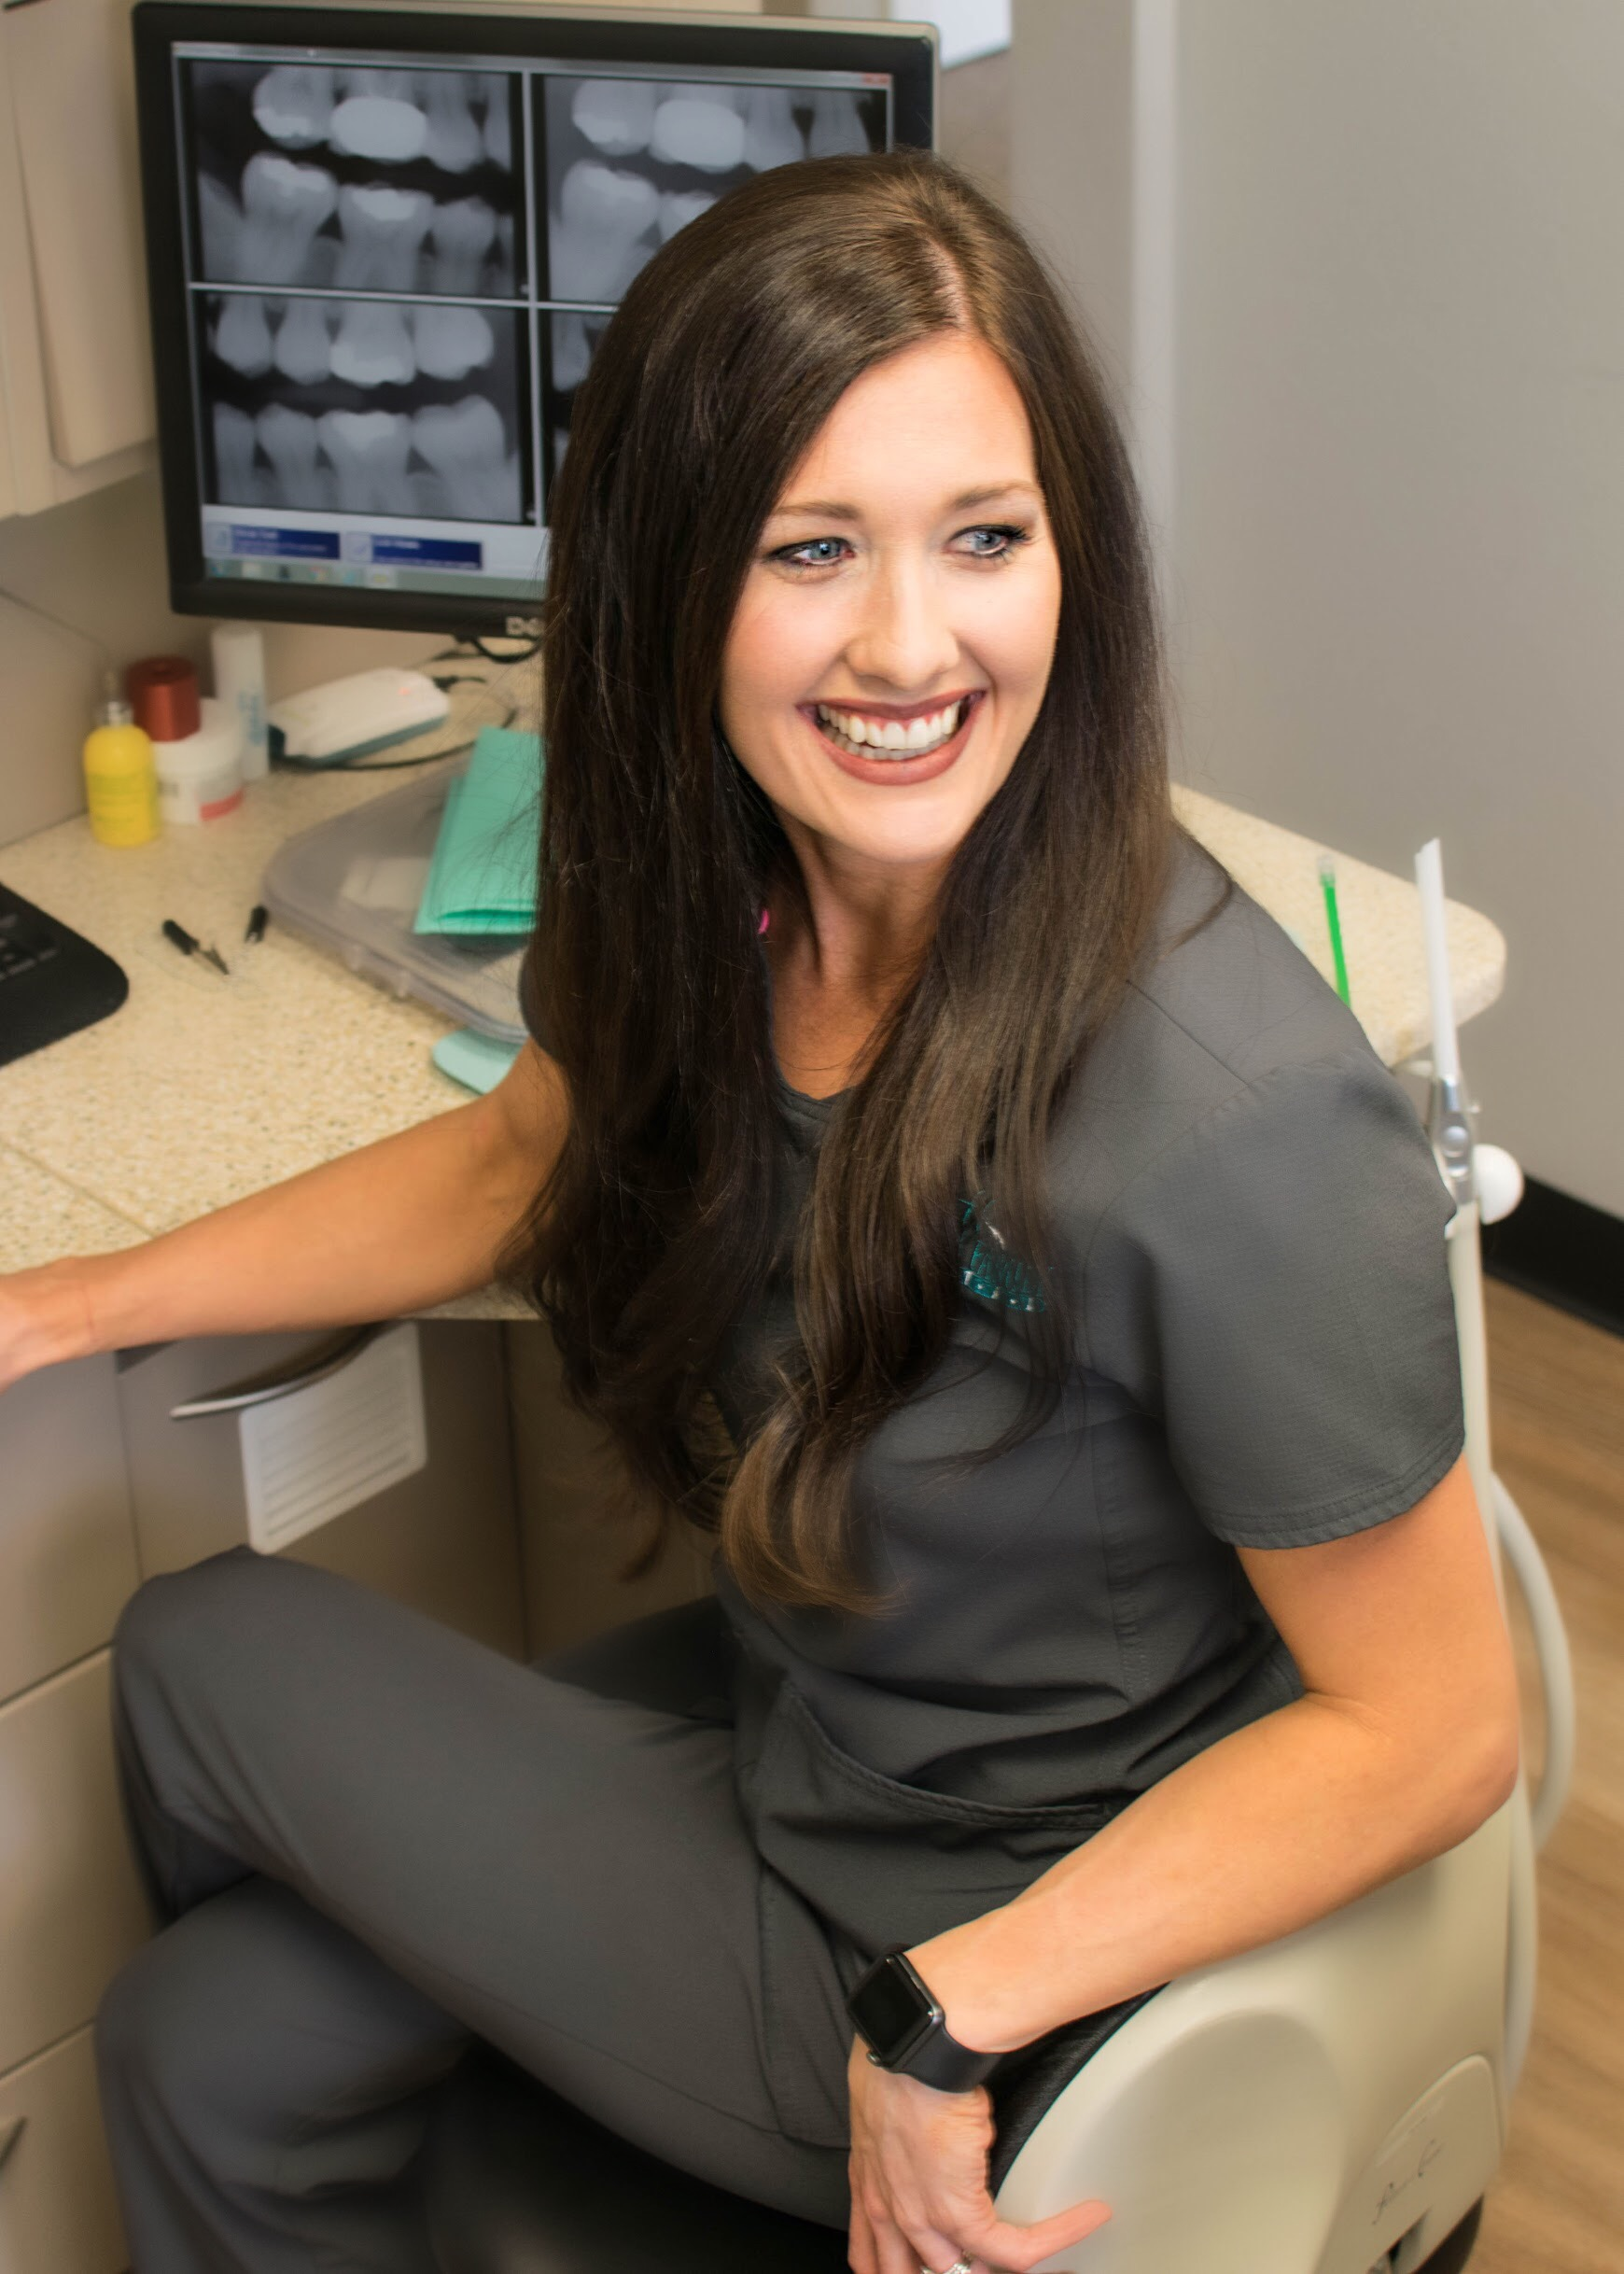 helena family dental, dentist, orthodontics, oral surgery, west helena, mariana